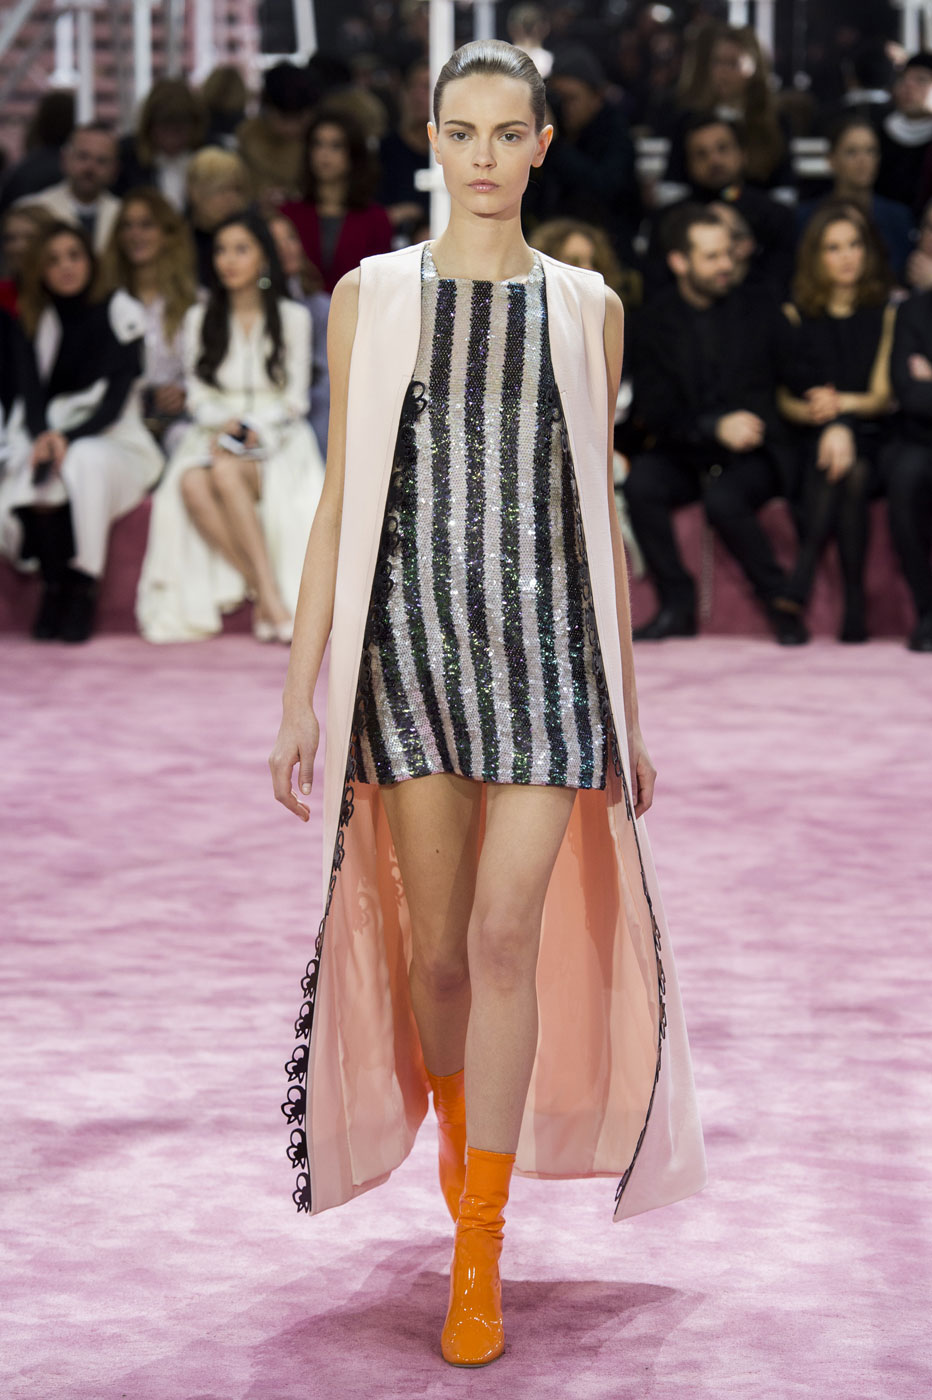 Christian-Dior-fashion-runway-show-haute-couture-paris-spring-summer-2015-the-impression-086